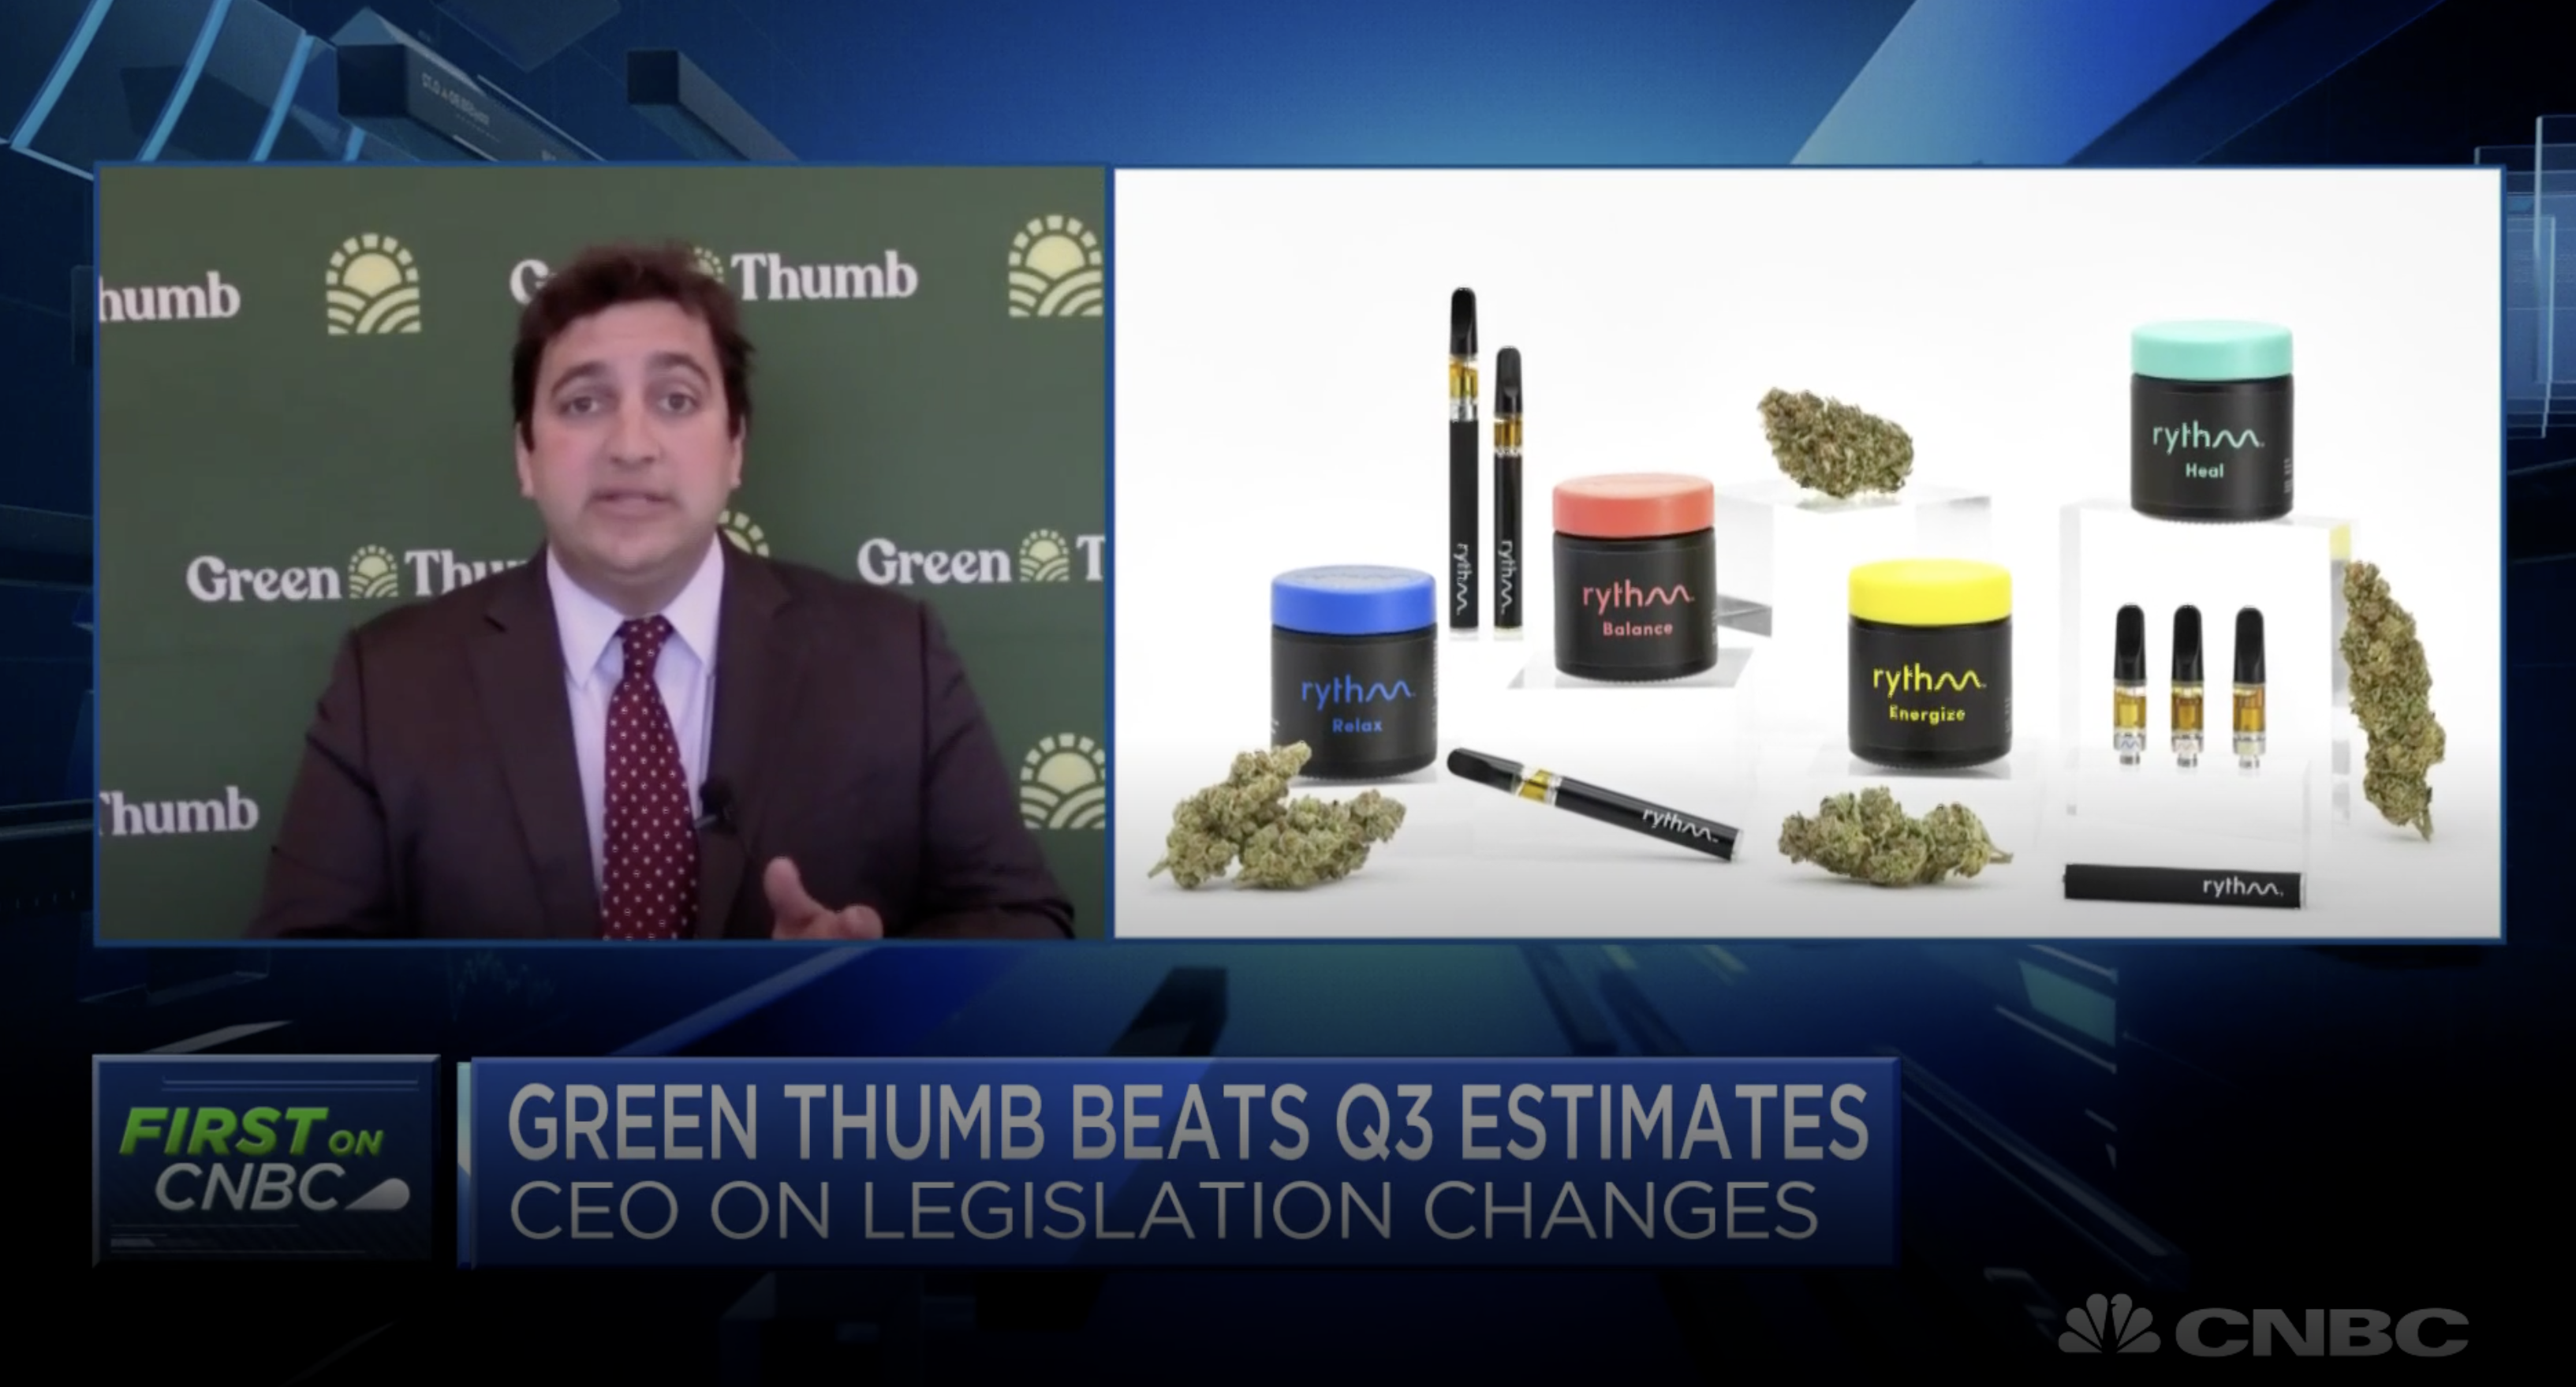 Green Thumb CEO on its Q3 estimates beat, election results